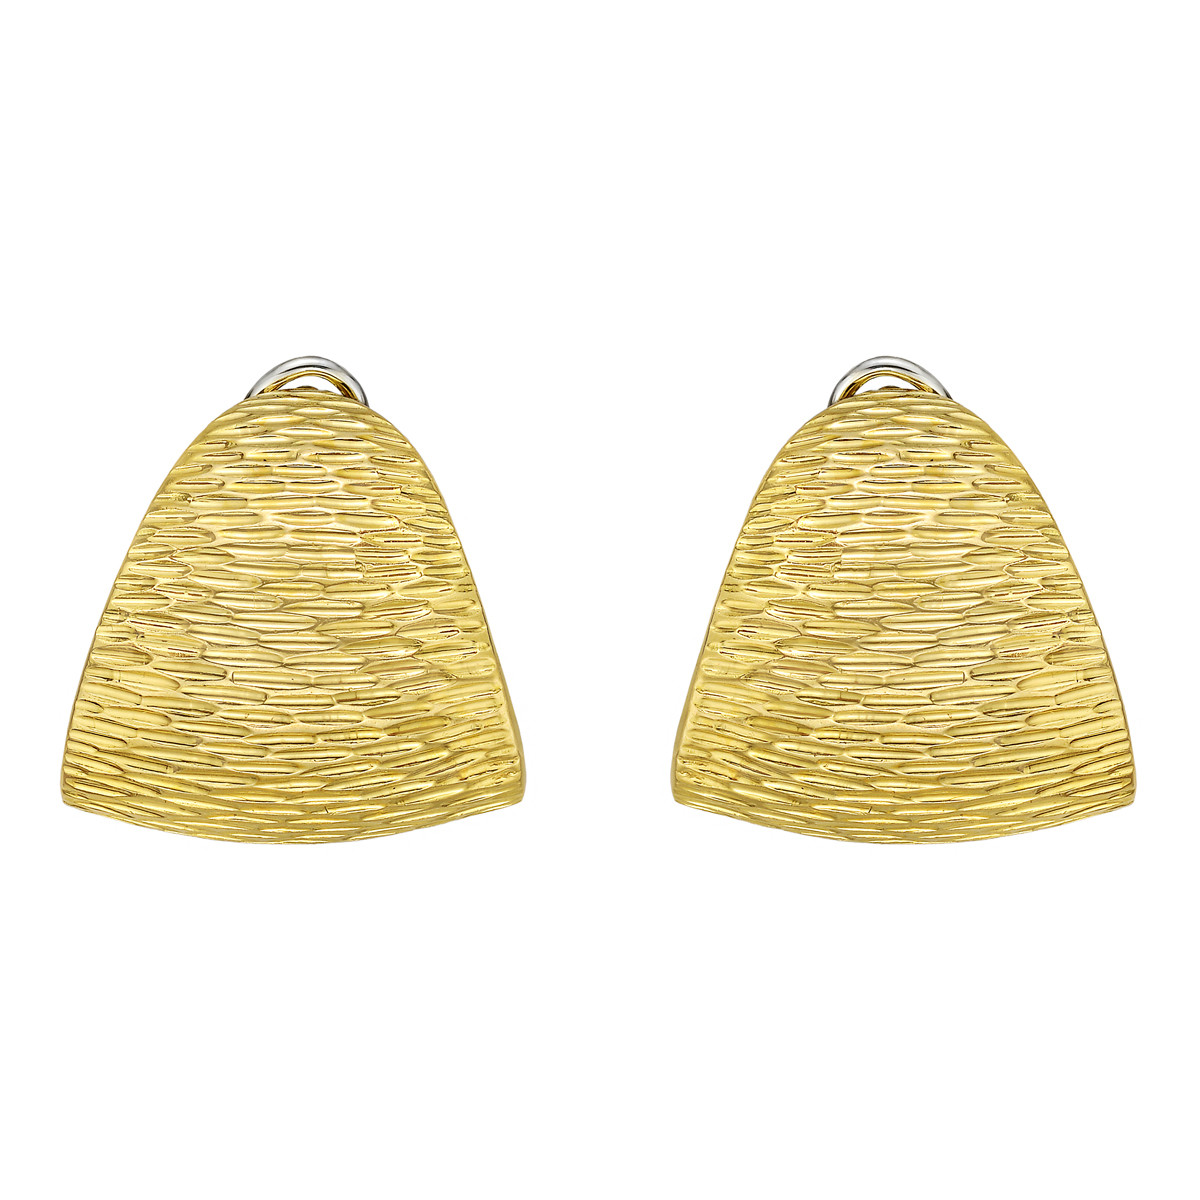 Large 18k Yellow Gold Triangular Earclips